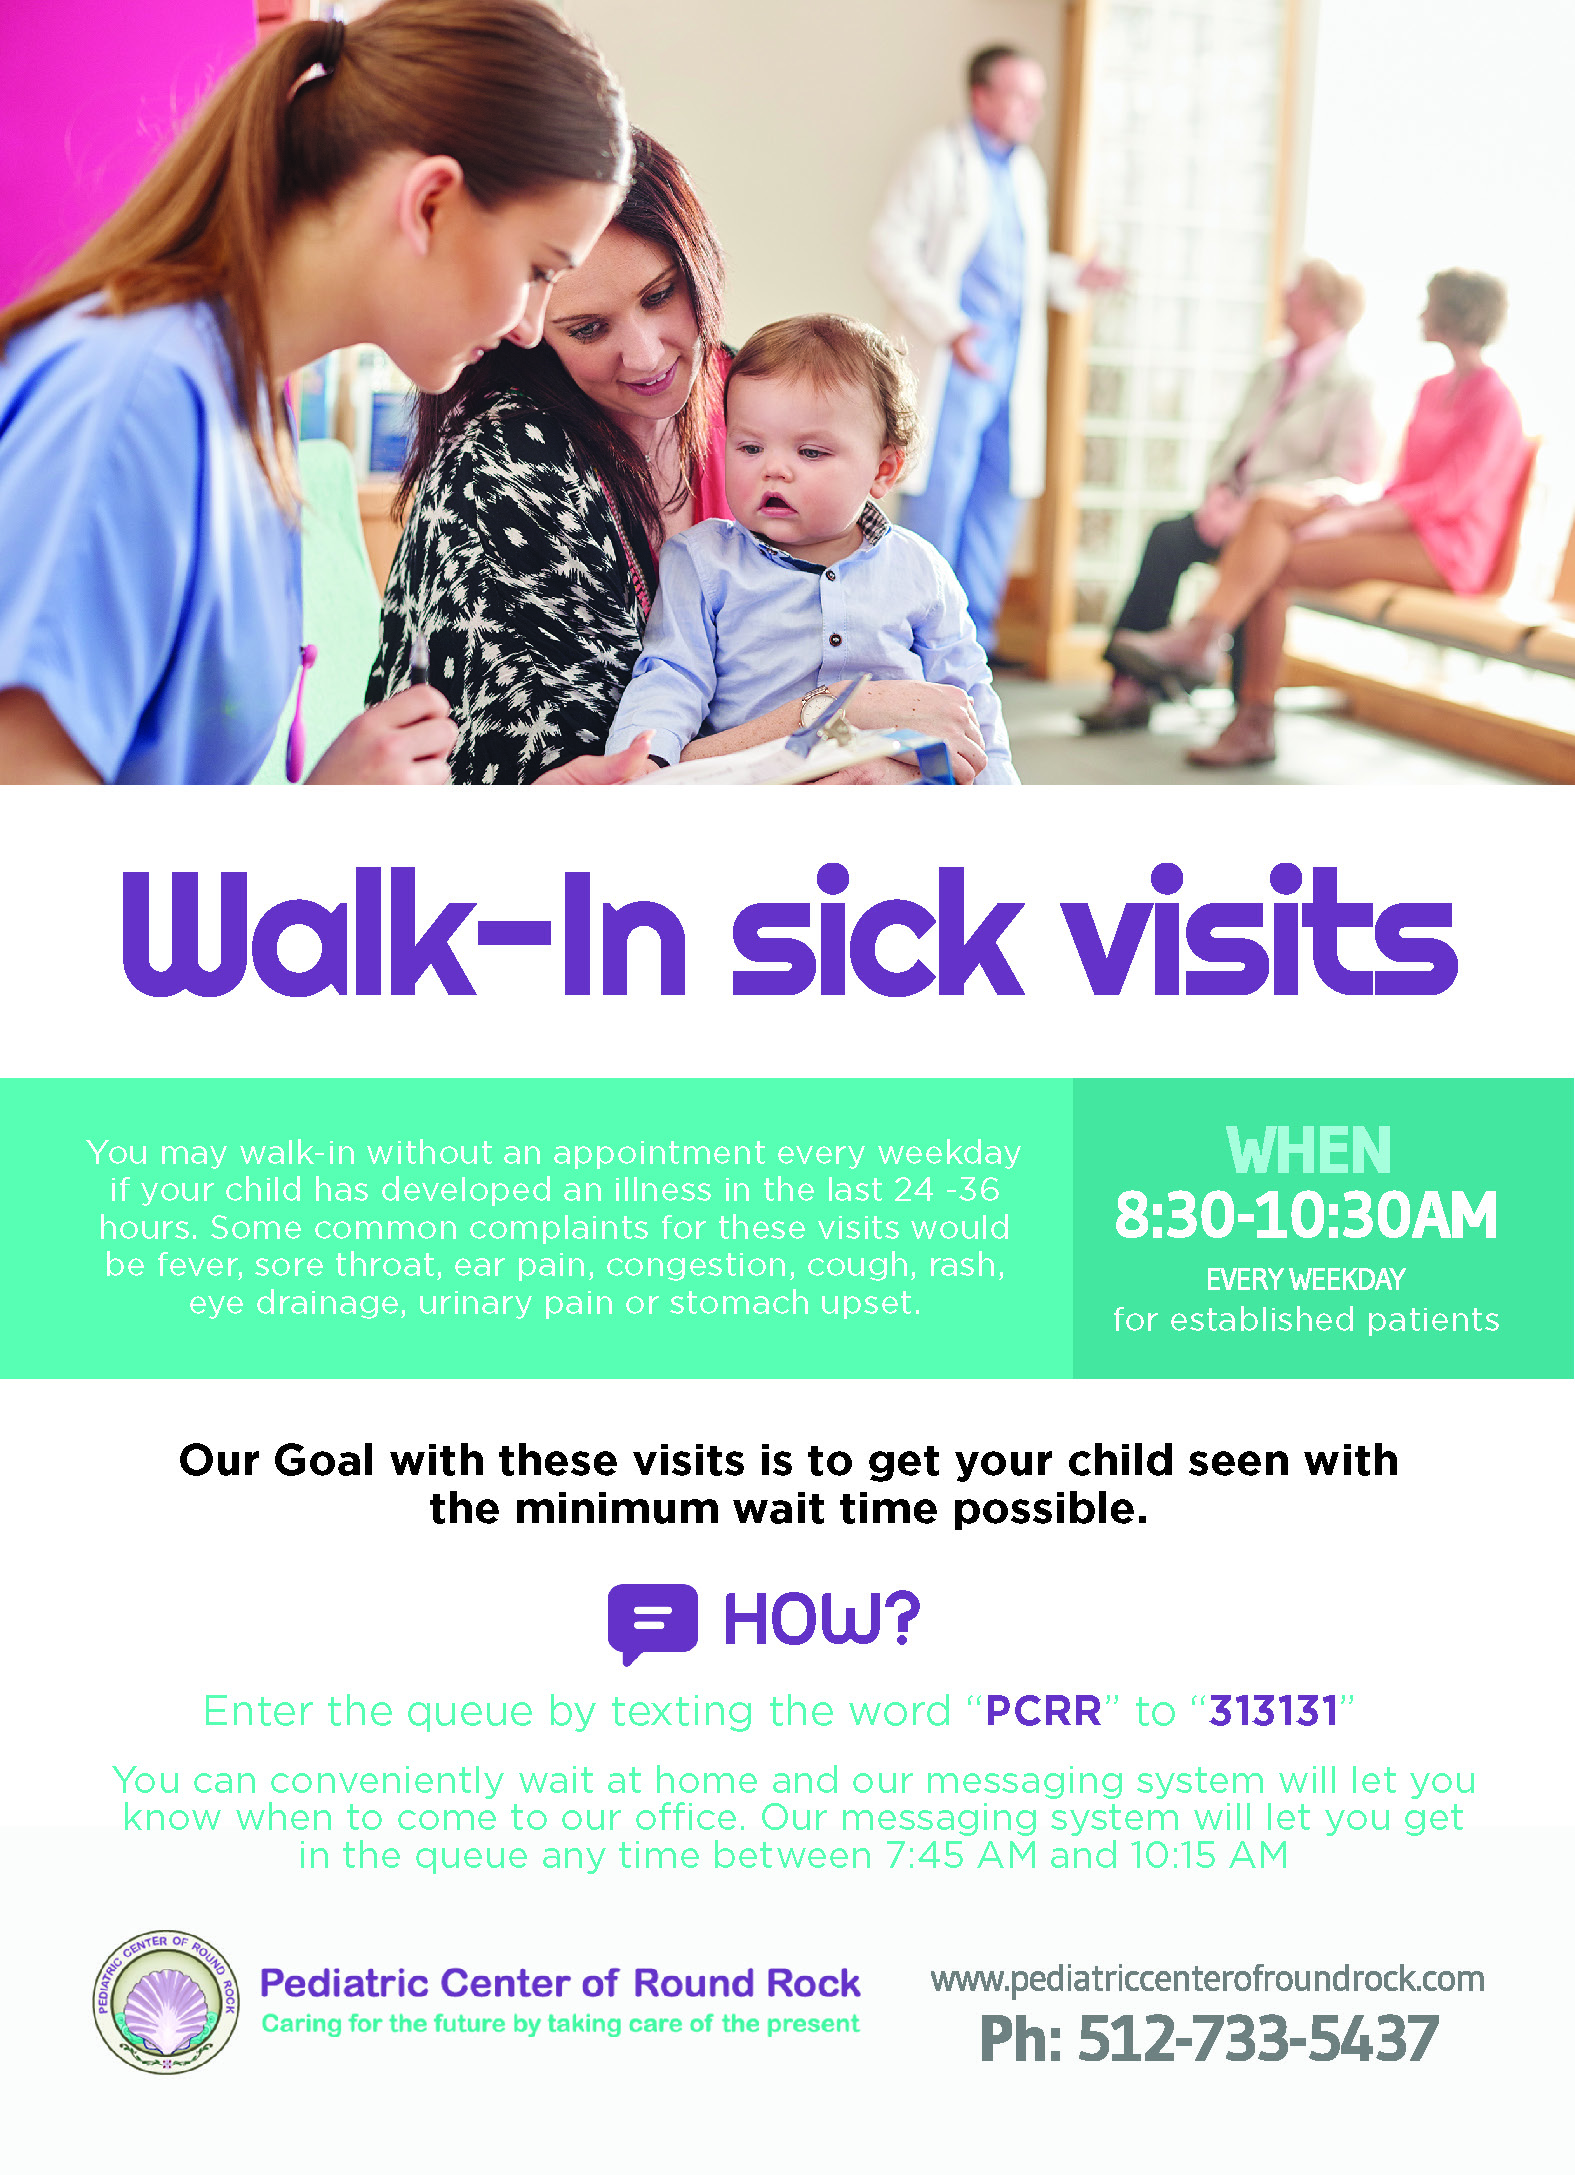 Walk-In sick visits